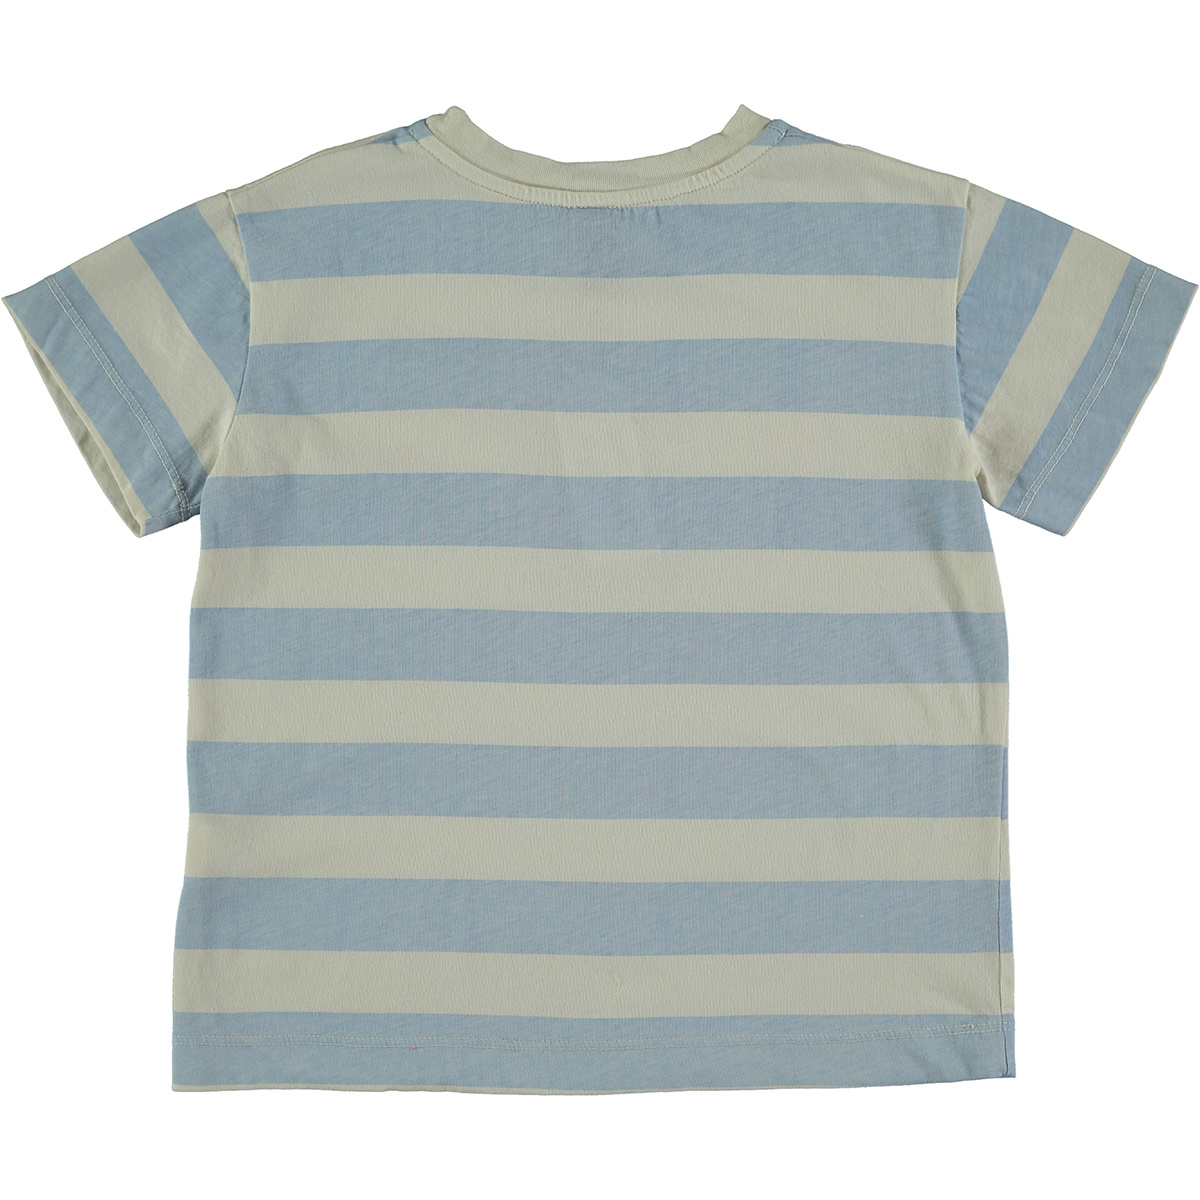 T-shirt Stripes - Ivory-2